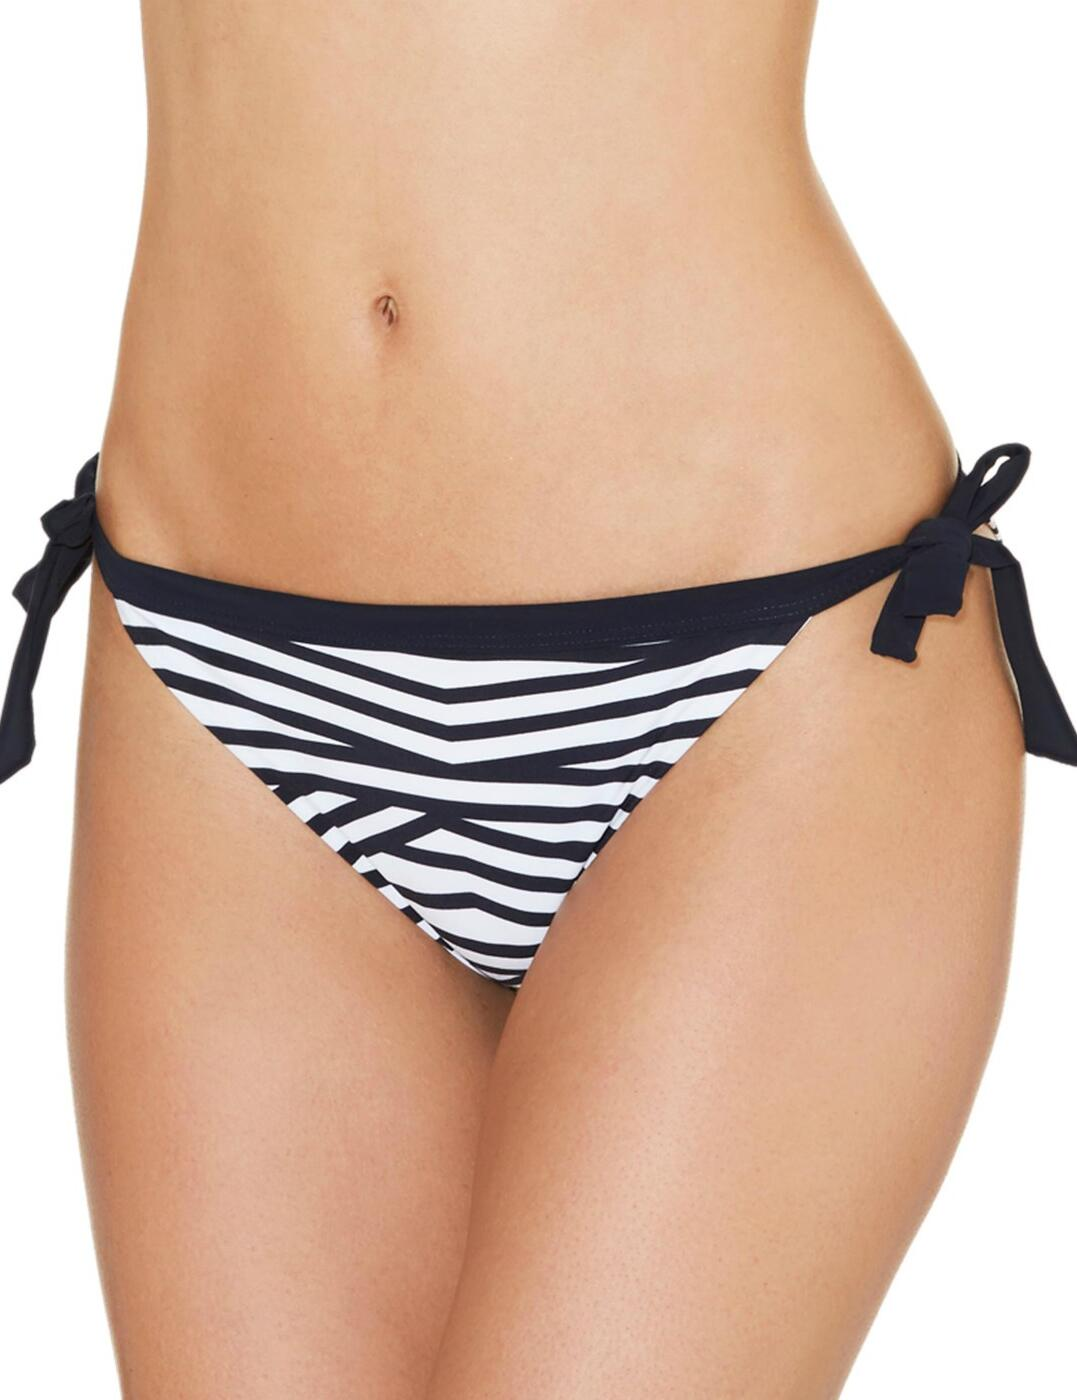 ER20 Aubade Ocean Bow Mini Coeur Bikini Brief  - ER20 Sailor